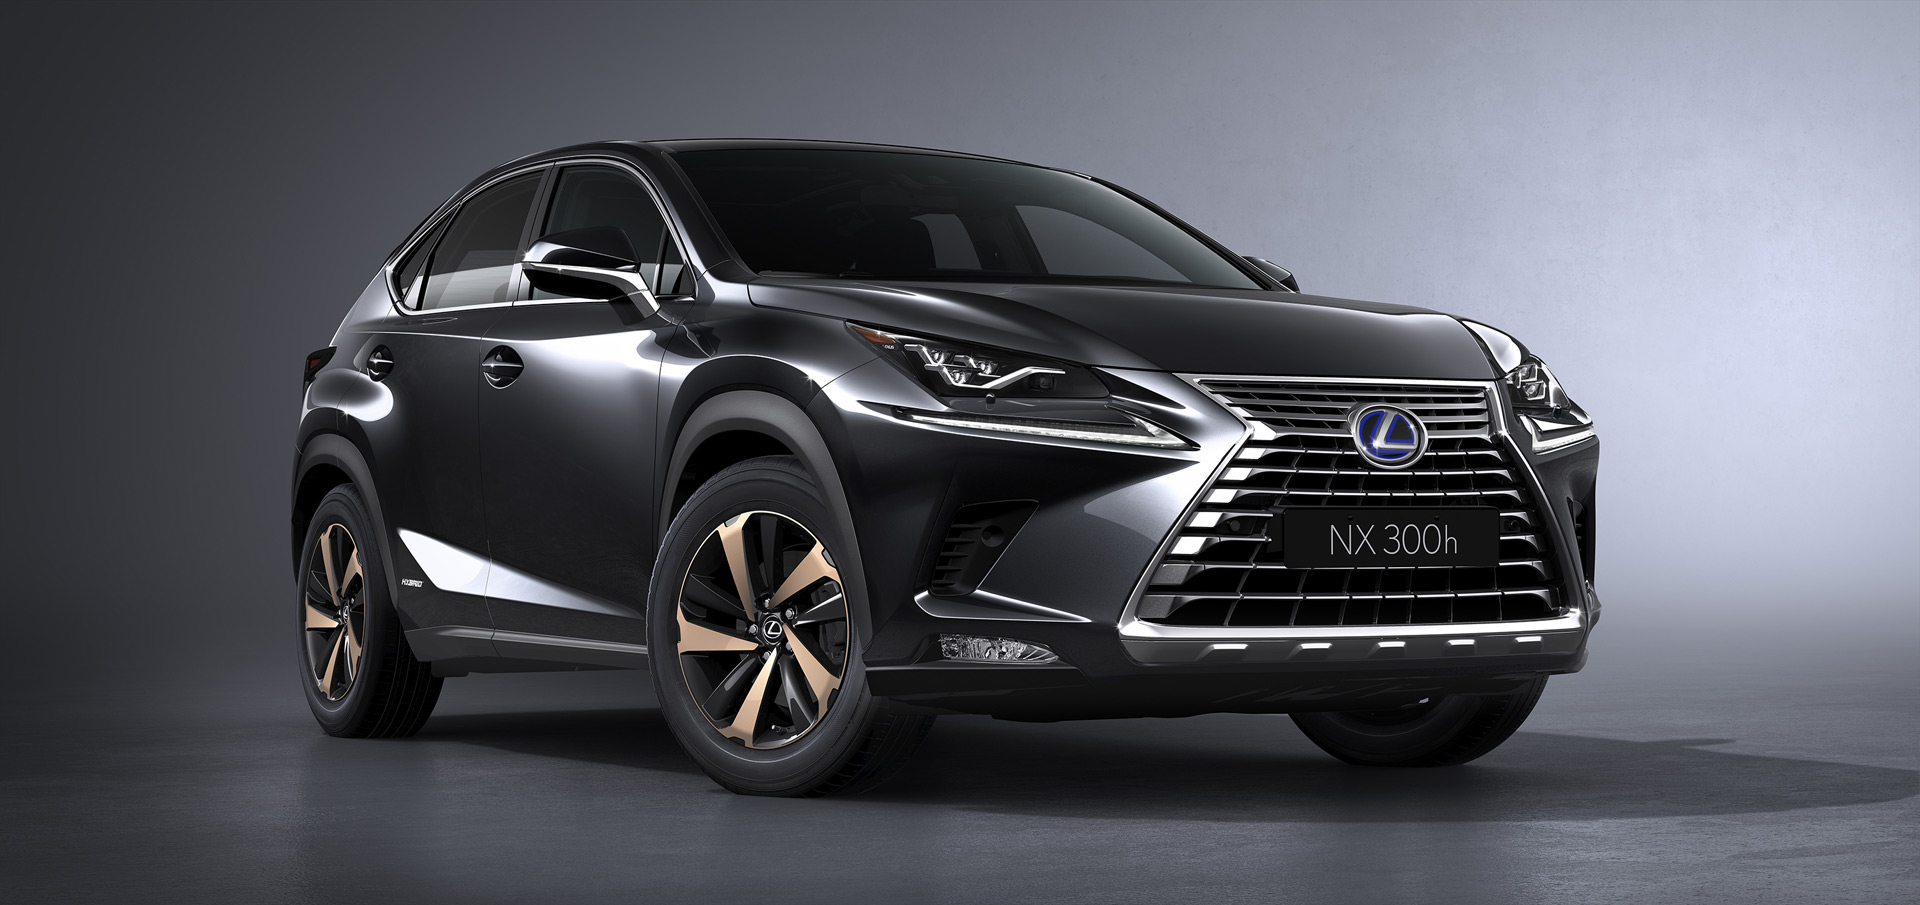 Lexus Nx Vs Rx >> 2018 Lexus NX Hybrid gets more safety equipment at lower price